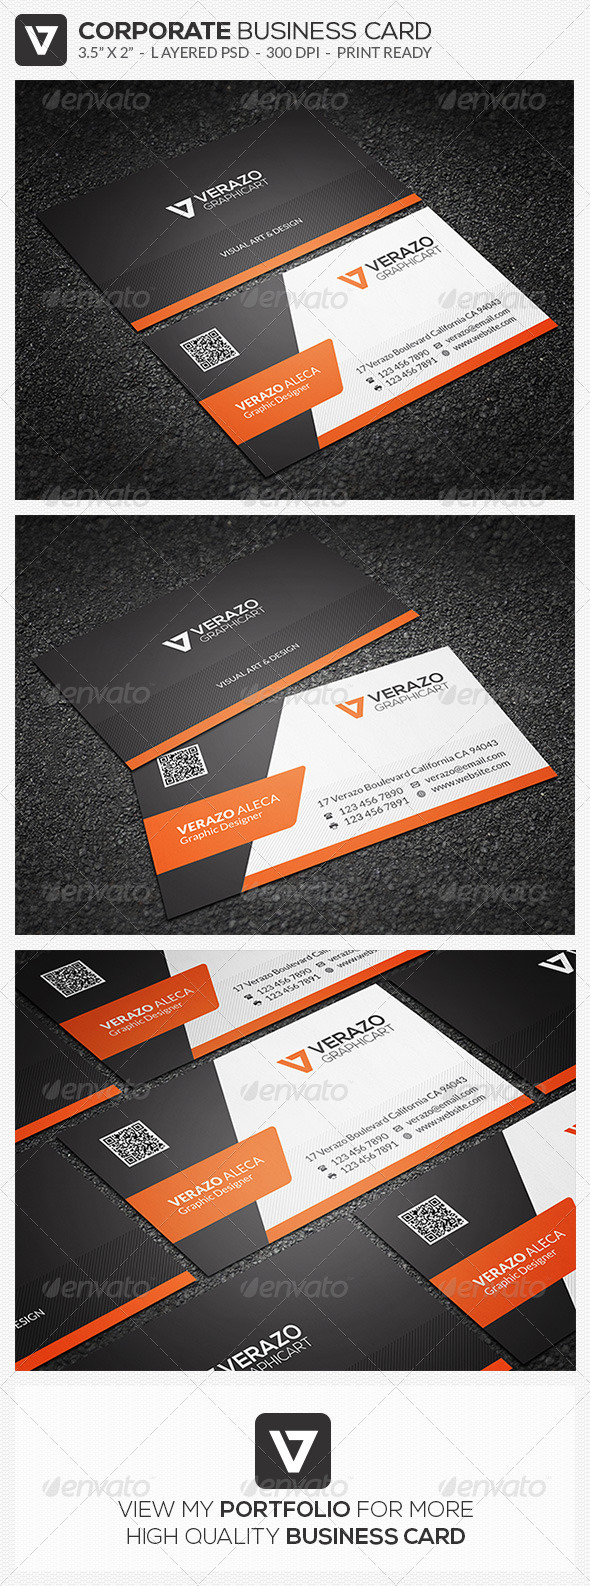 GraphicRiver Creative Corporate Business Card 42 8033422